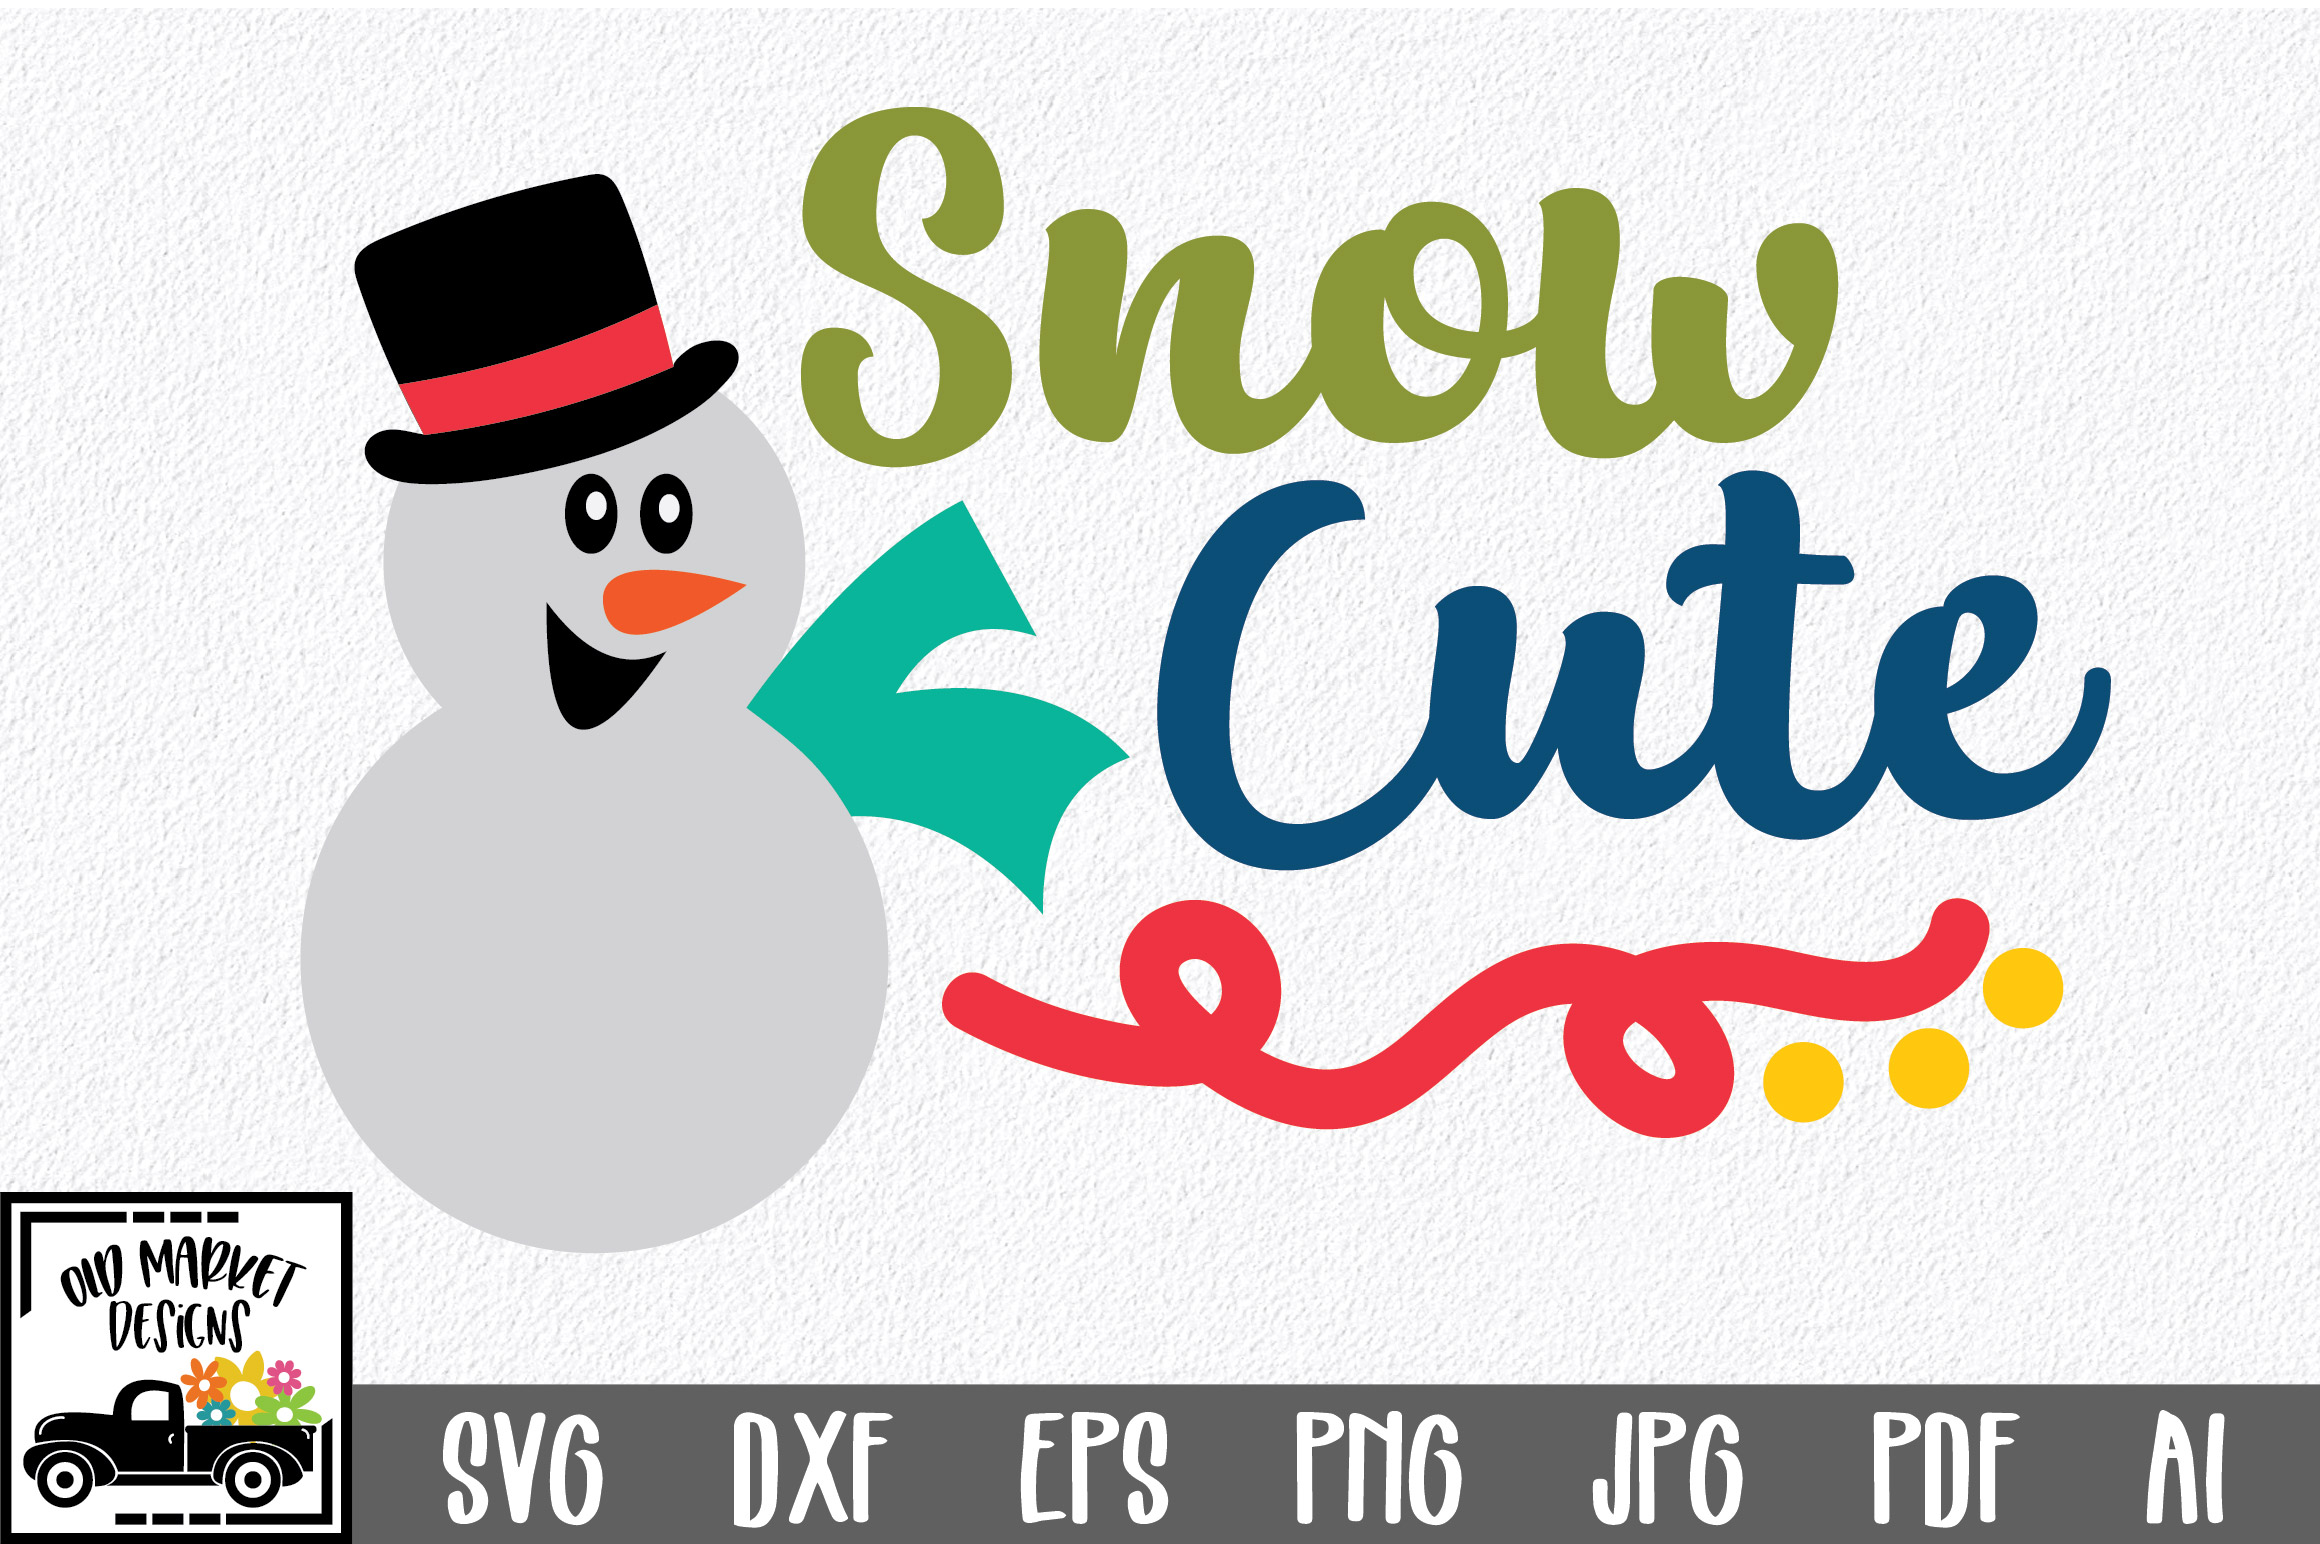 Download Free Christmas Graphic By Oldmarketdesigns Creative Fabrica for Cricut Explore, Silhouette and other cutting machines.